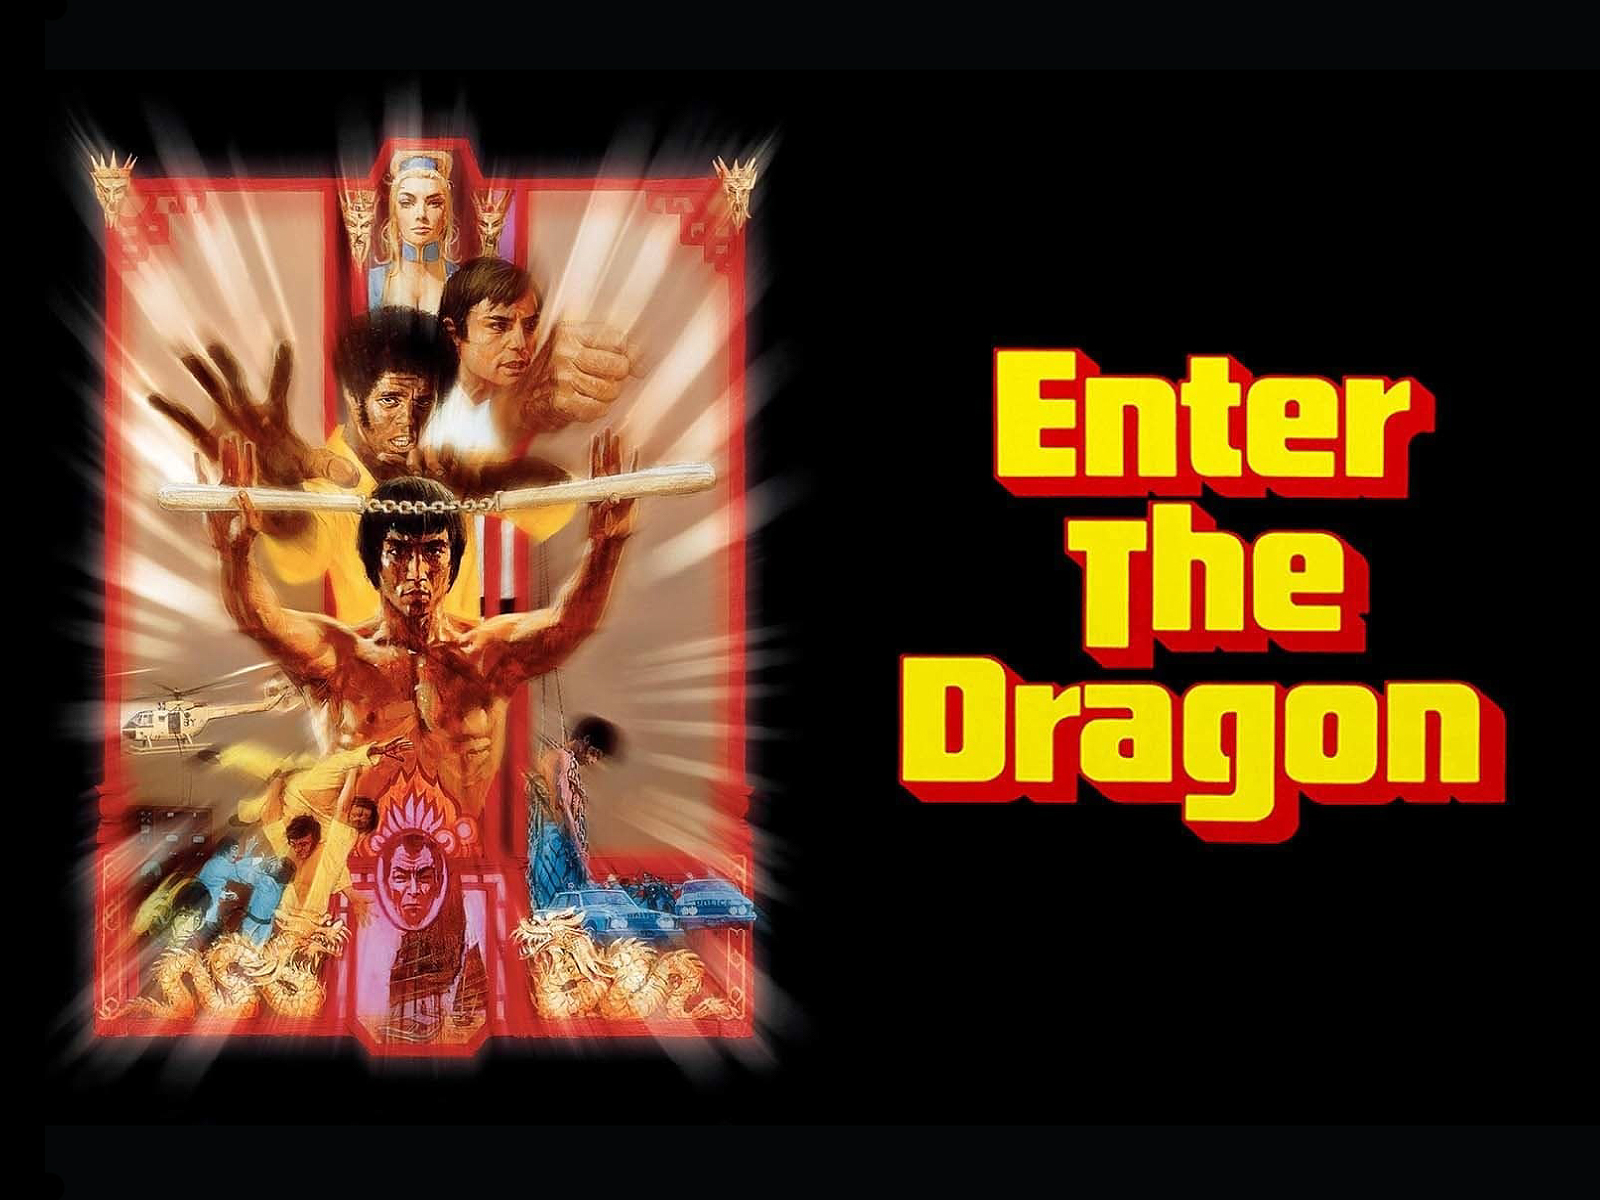 One of the greatest and most influential martial arts films of all time, and Bruce Lee's final feature, returns to our big screens…